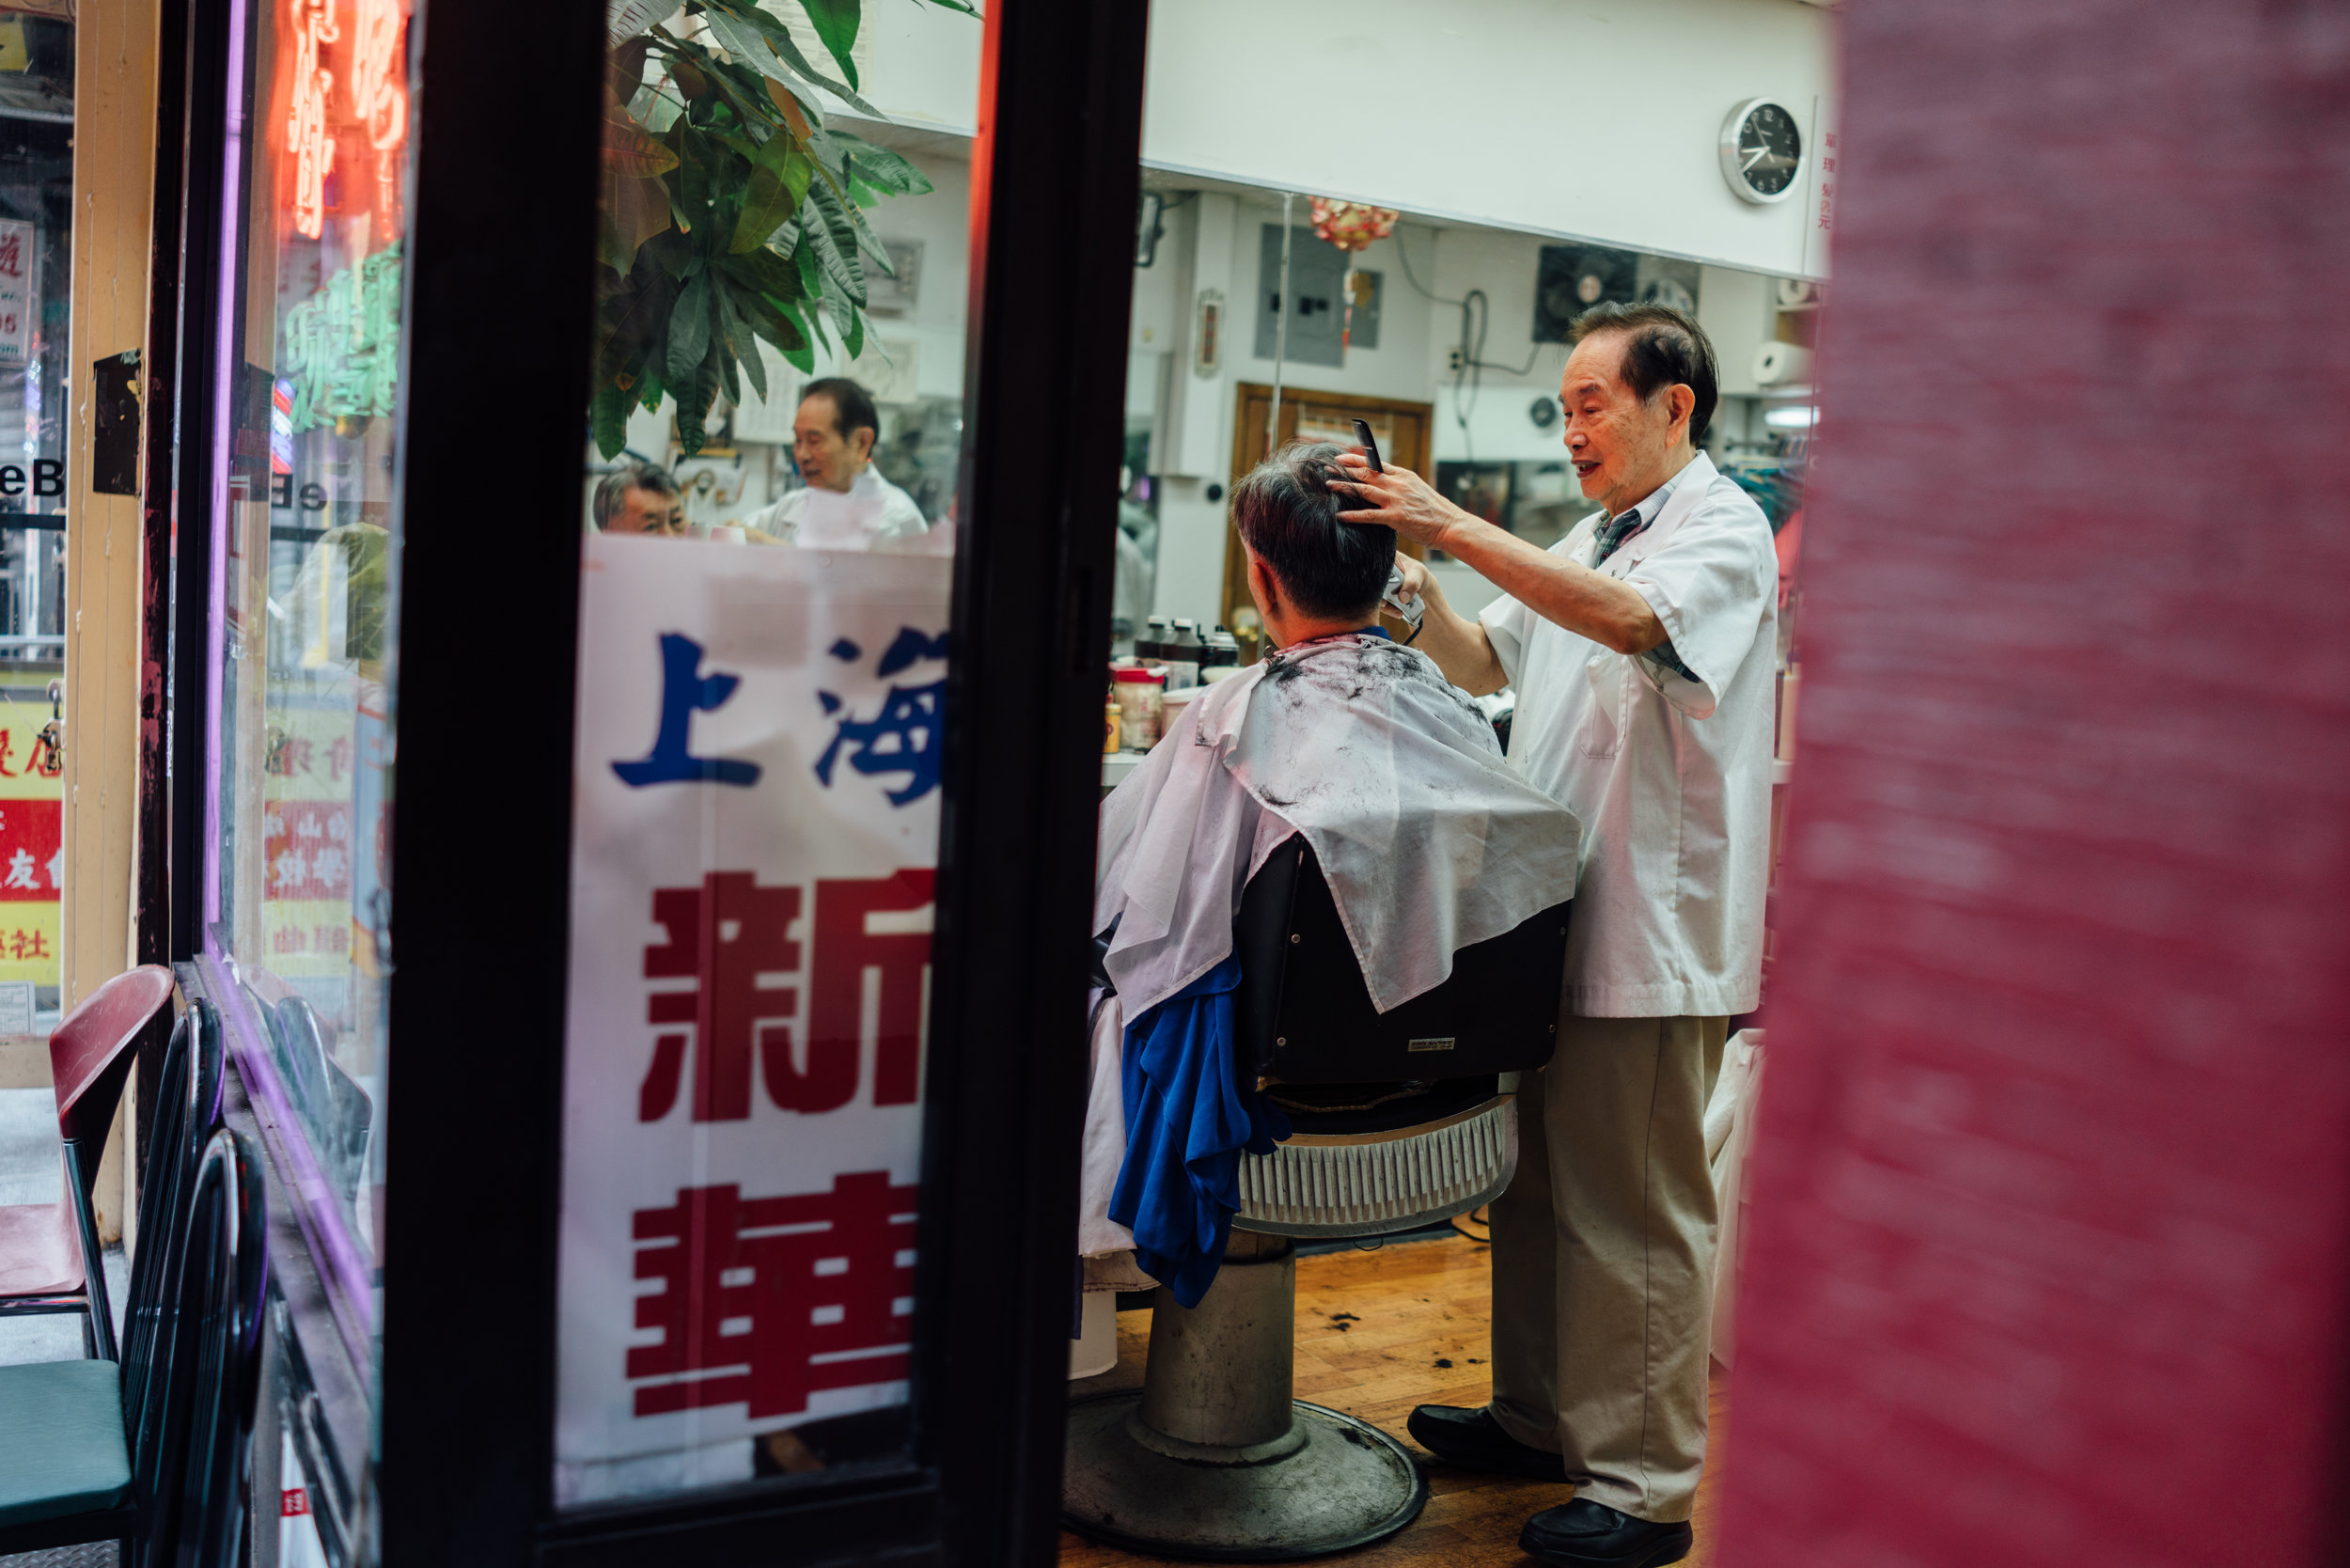 Barbers are busy on weekends